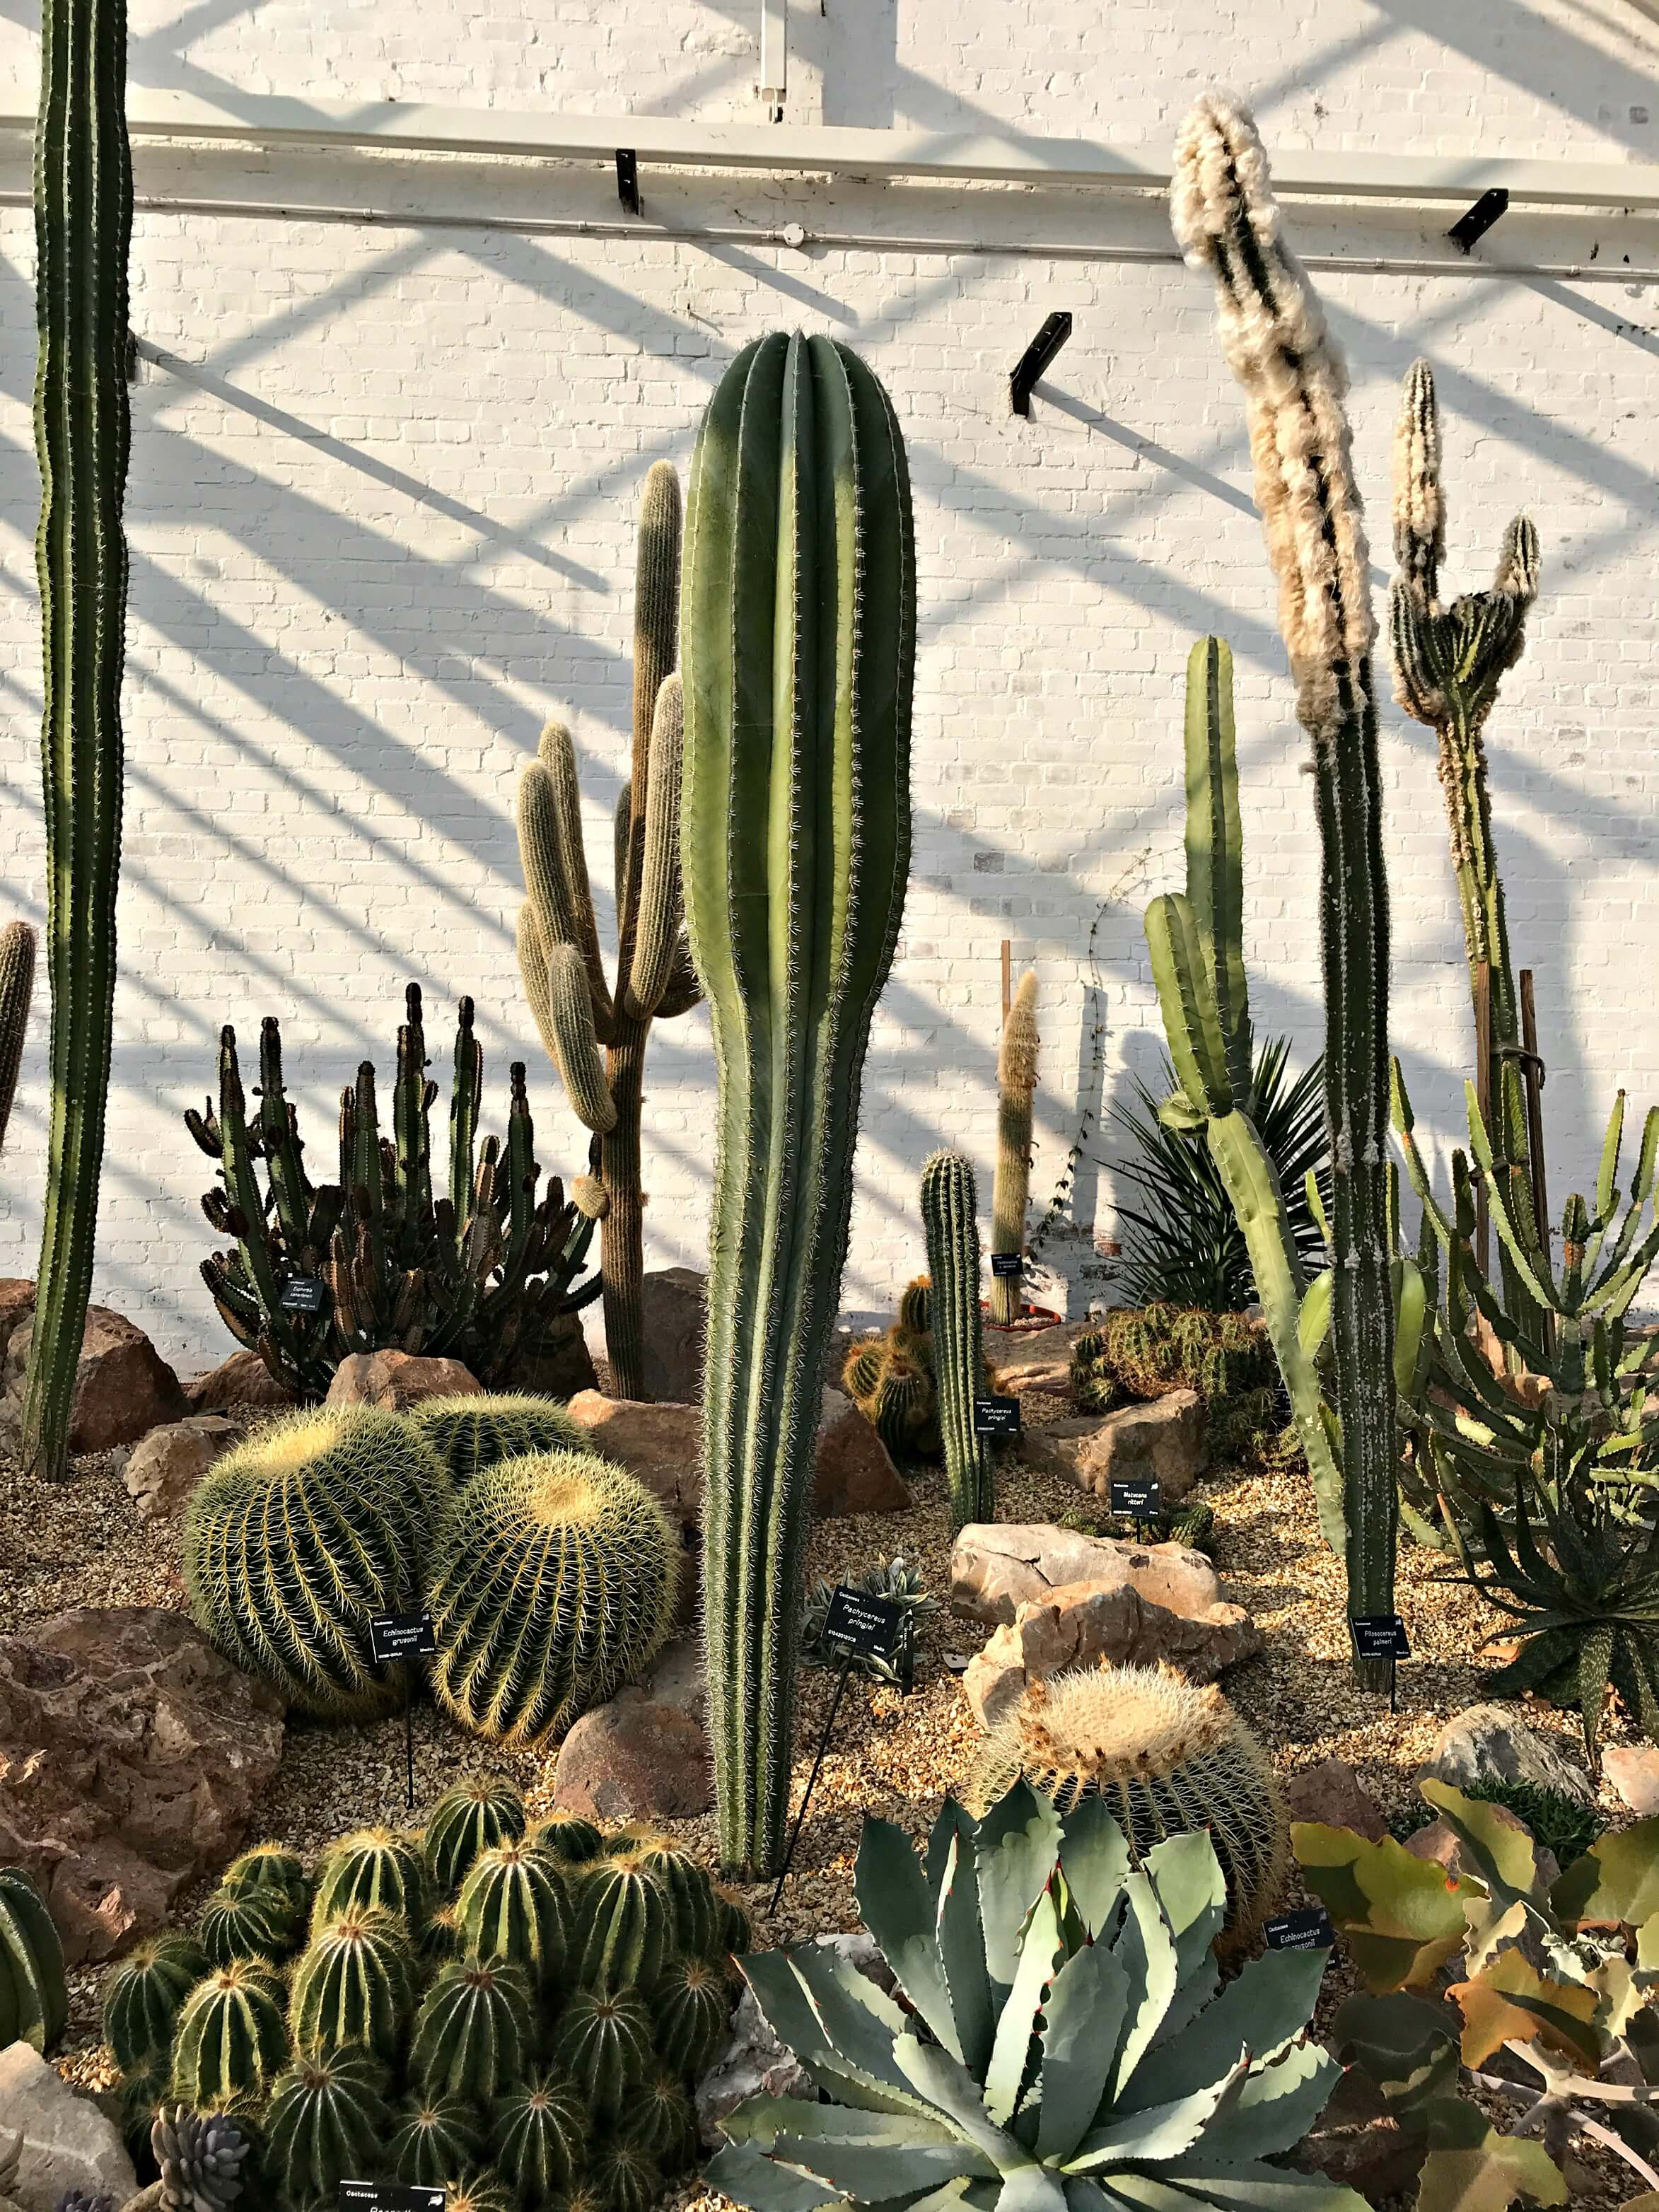 Cacti at Dyffryn Gardens - Oreo Cookie Quest